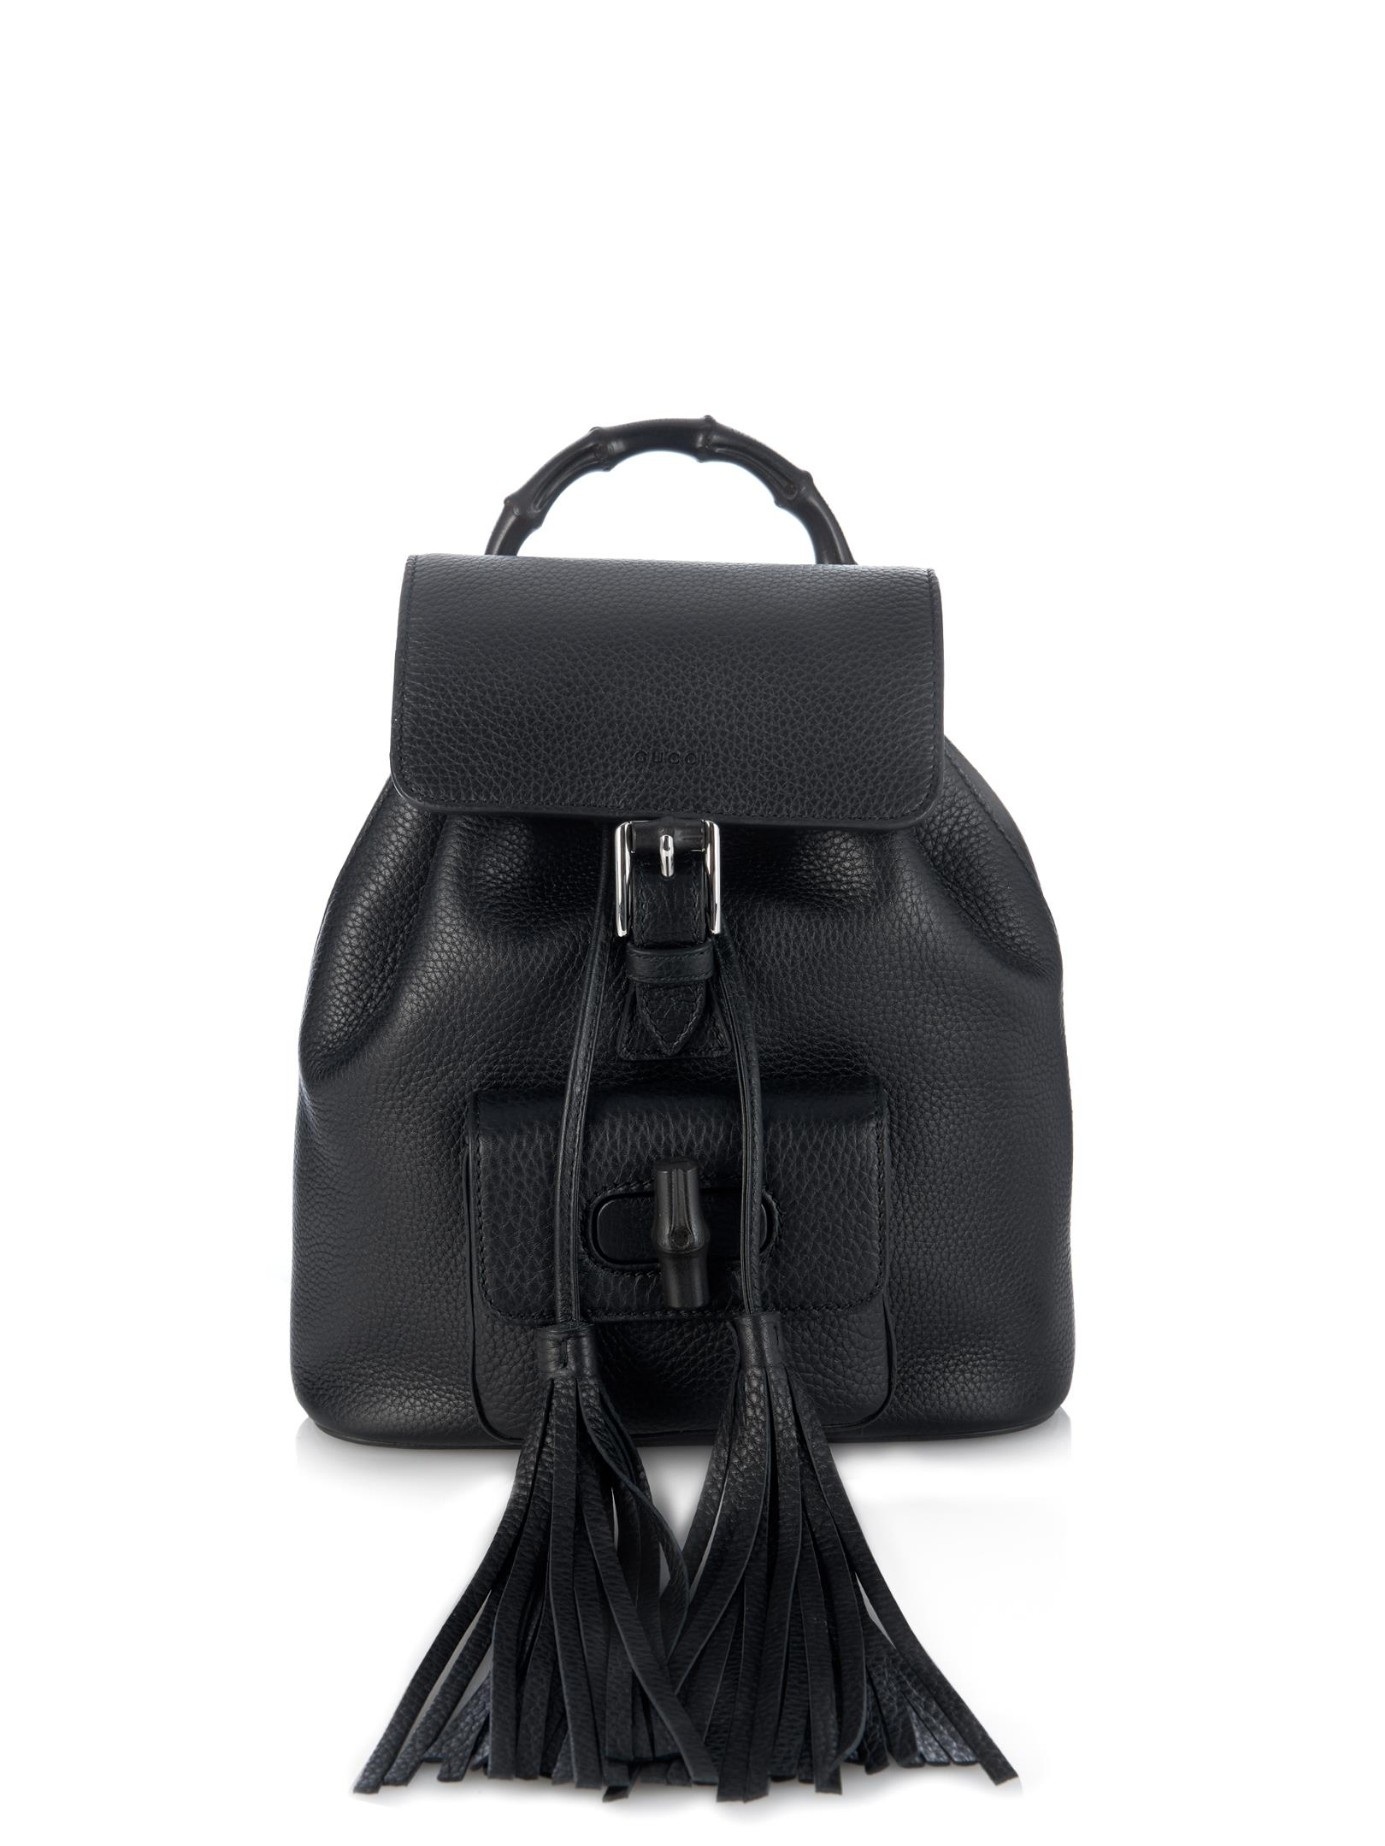 c2a99dd90d8 Lyst - Gucci Bamboo Mini Leather Backpack in Black